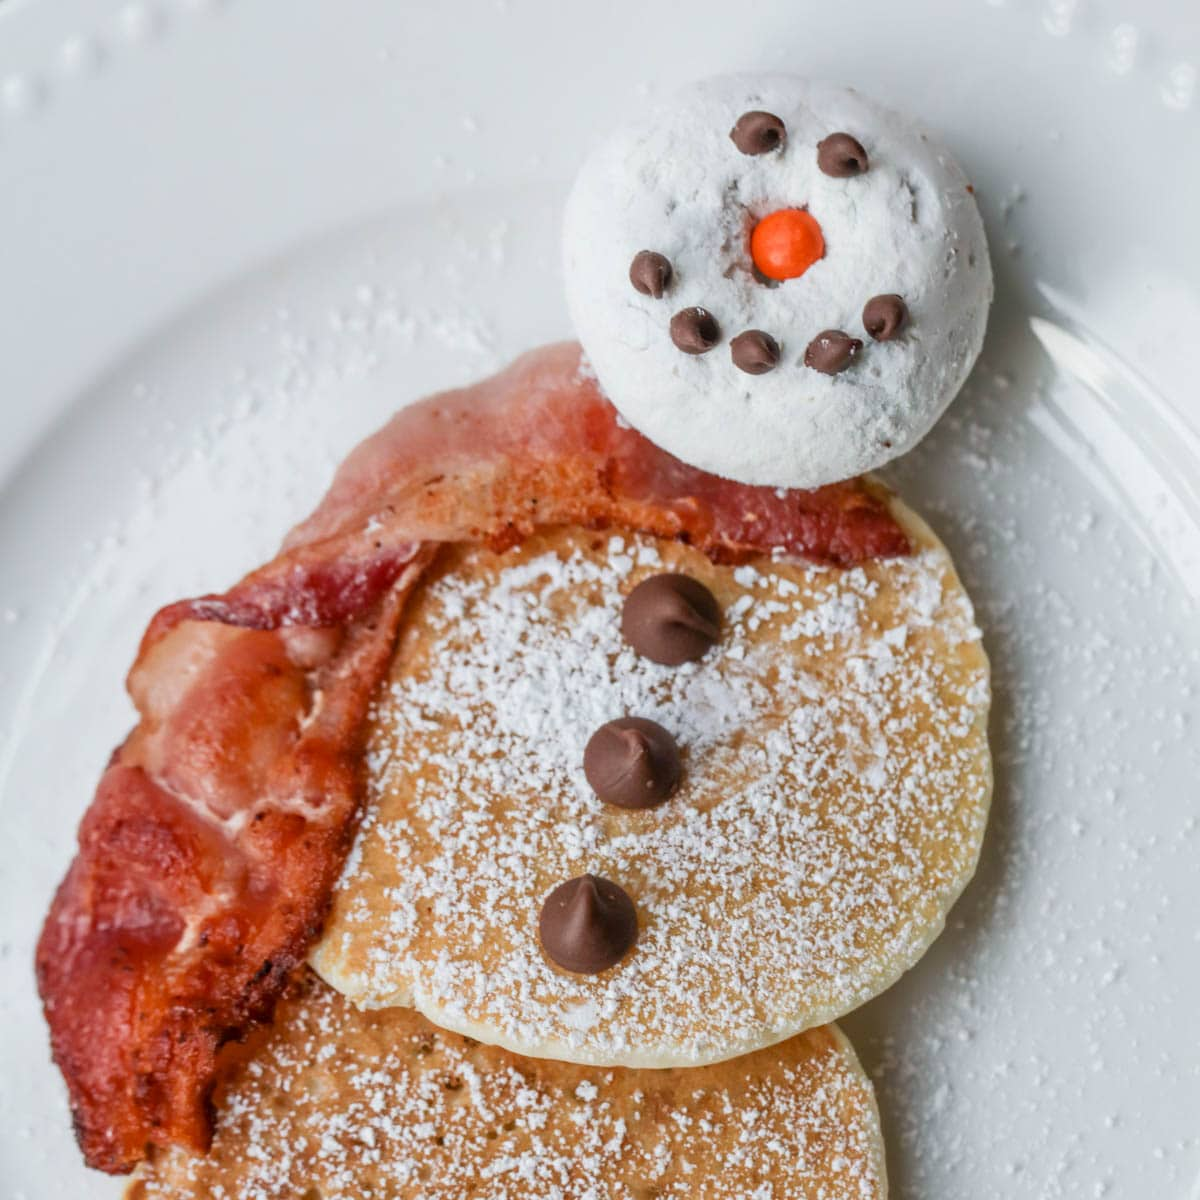 Christmas snowman pancakes plated and decorated with chocolate chips.